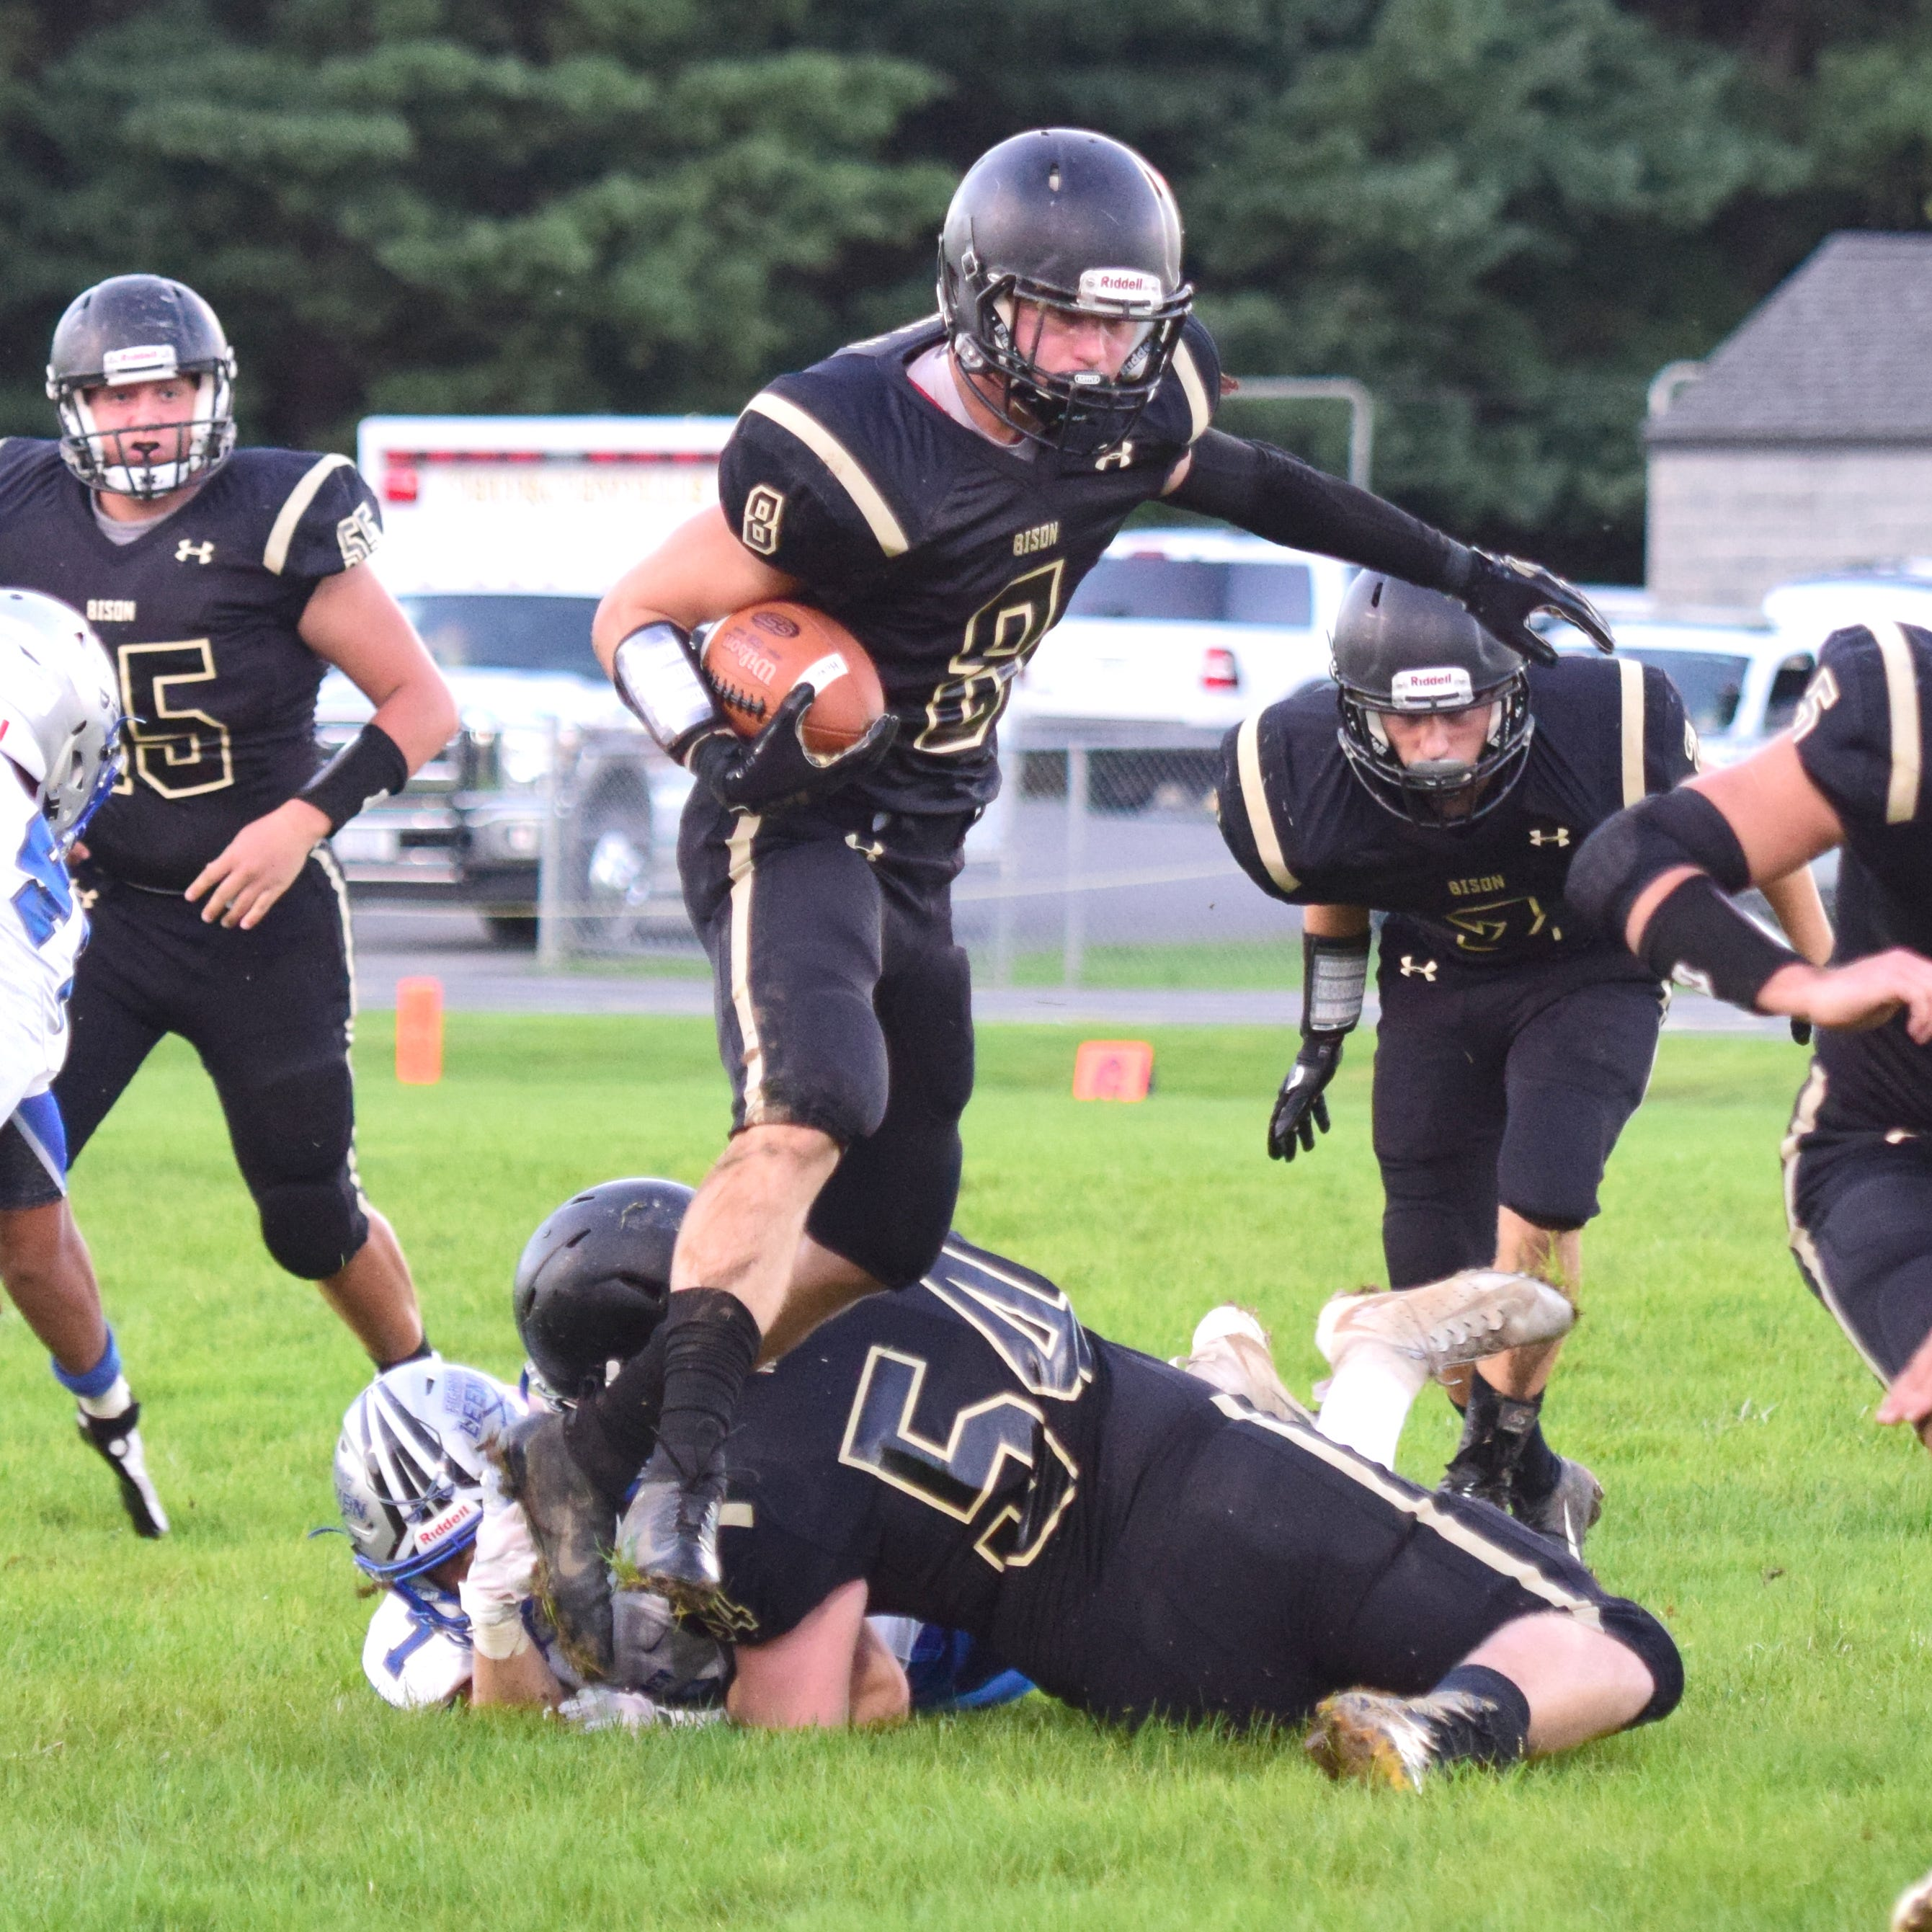 Defensive stand, Rivenburg's fourth TD propel Buffalo Gap past Robert E. Lee